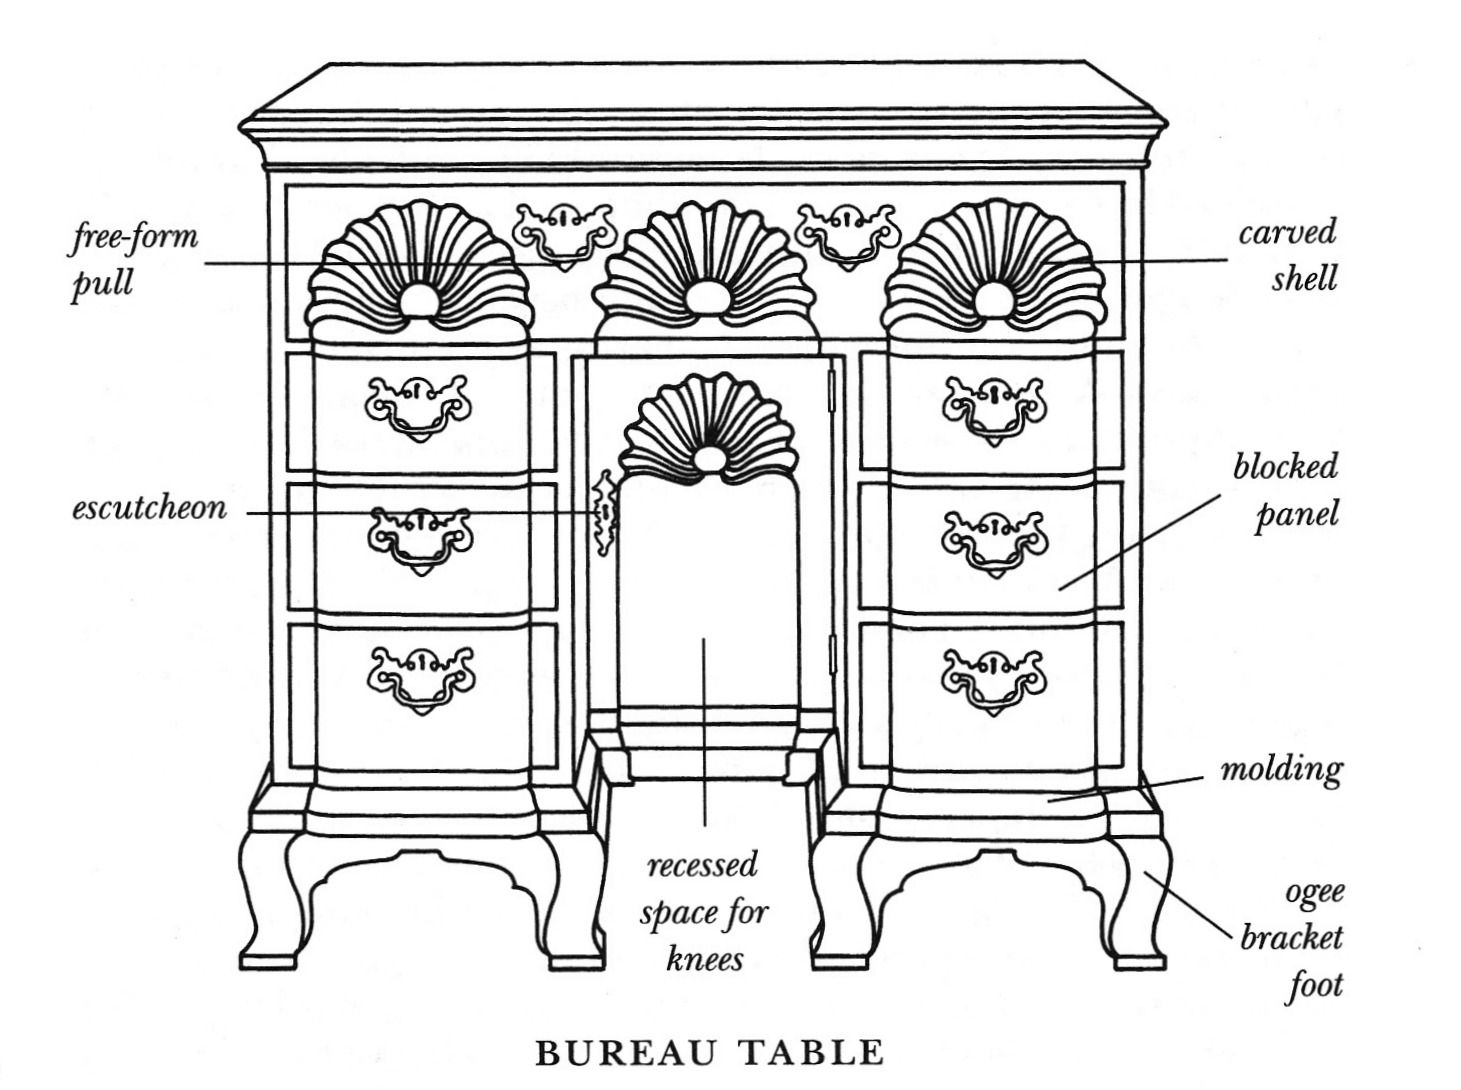 Diagram Of A Bureau Table